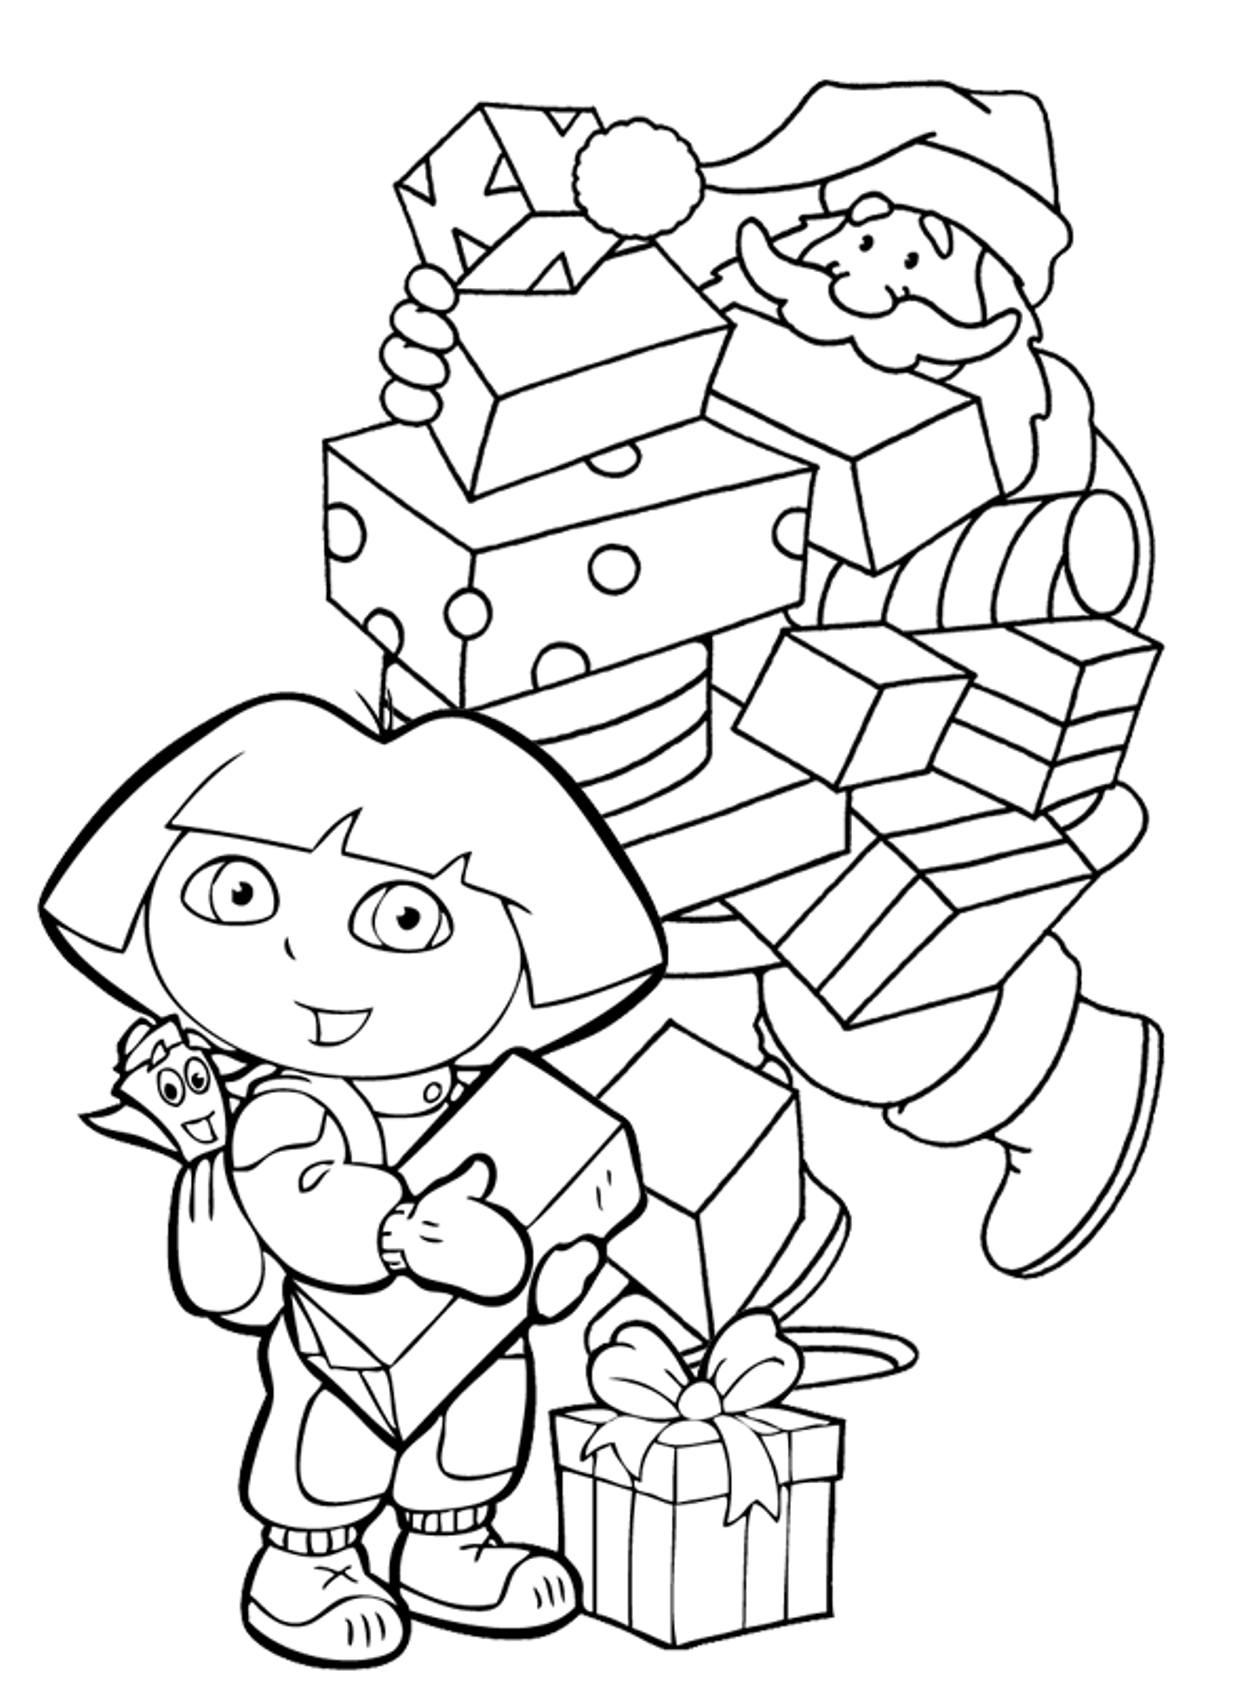 www coloring pages com christmas - dora christmas coloring pages coloring home